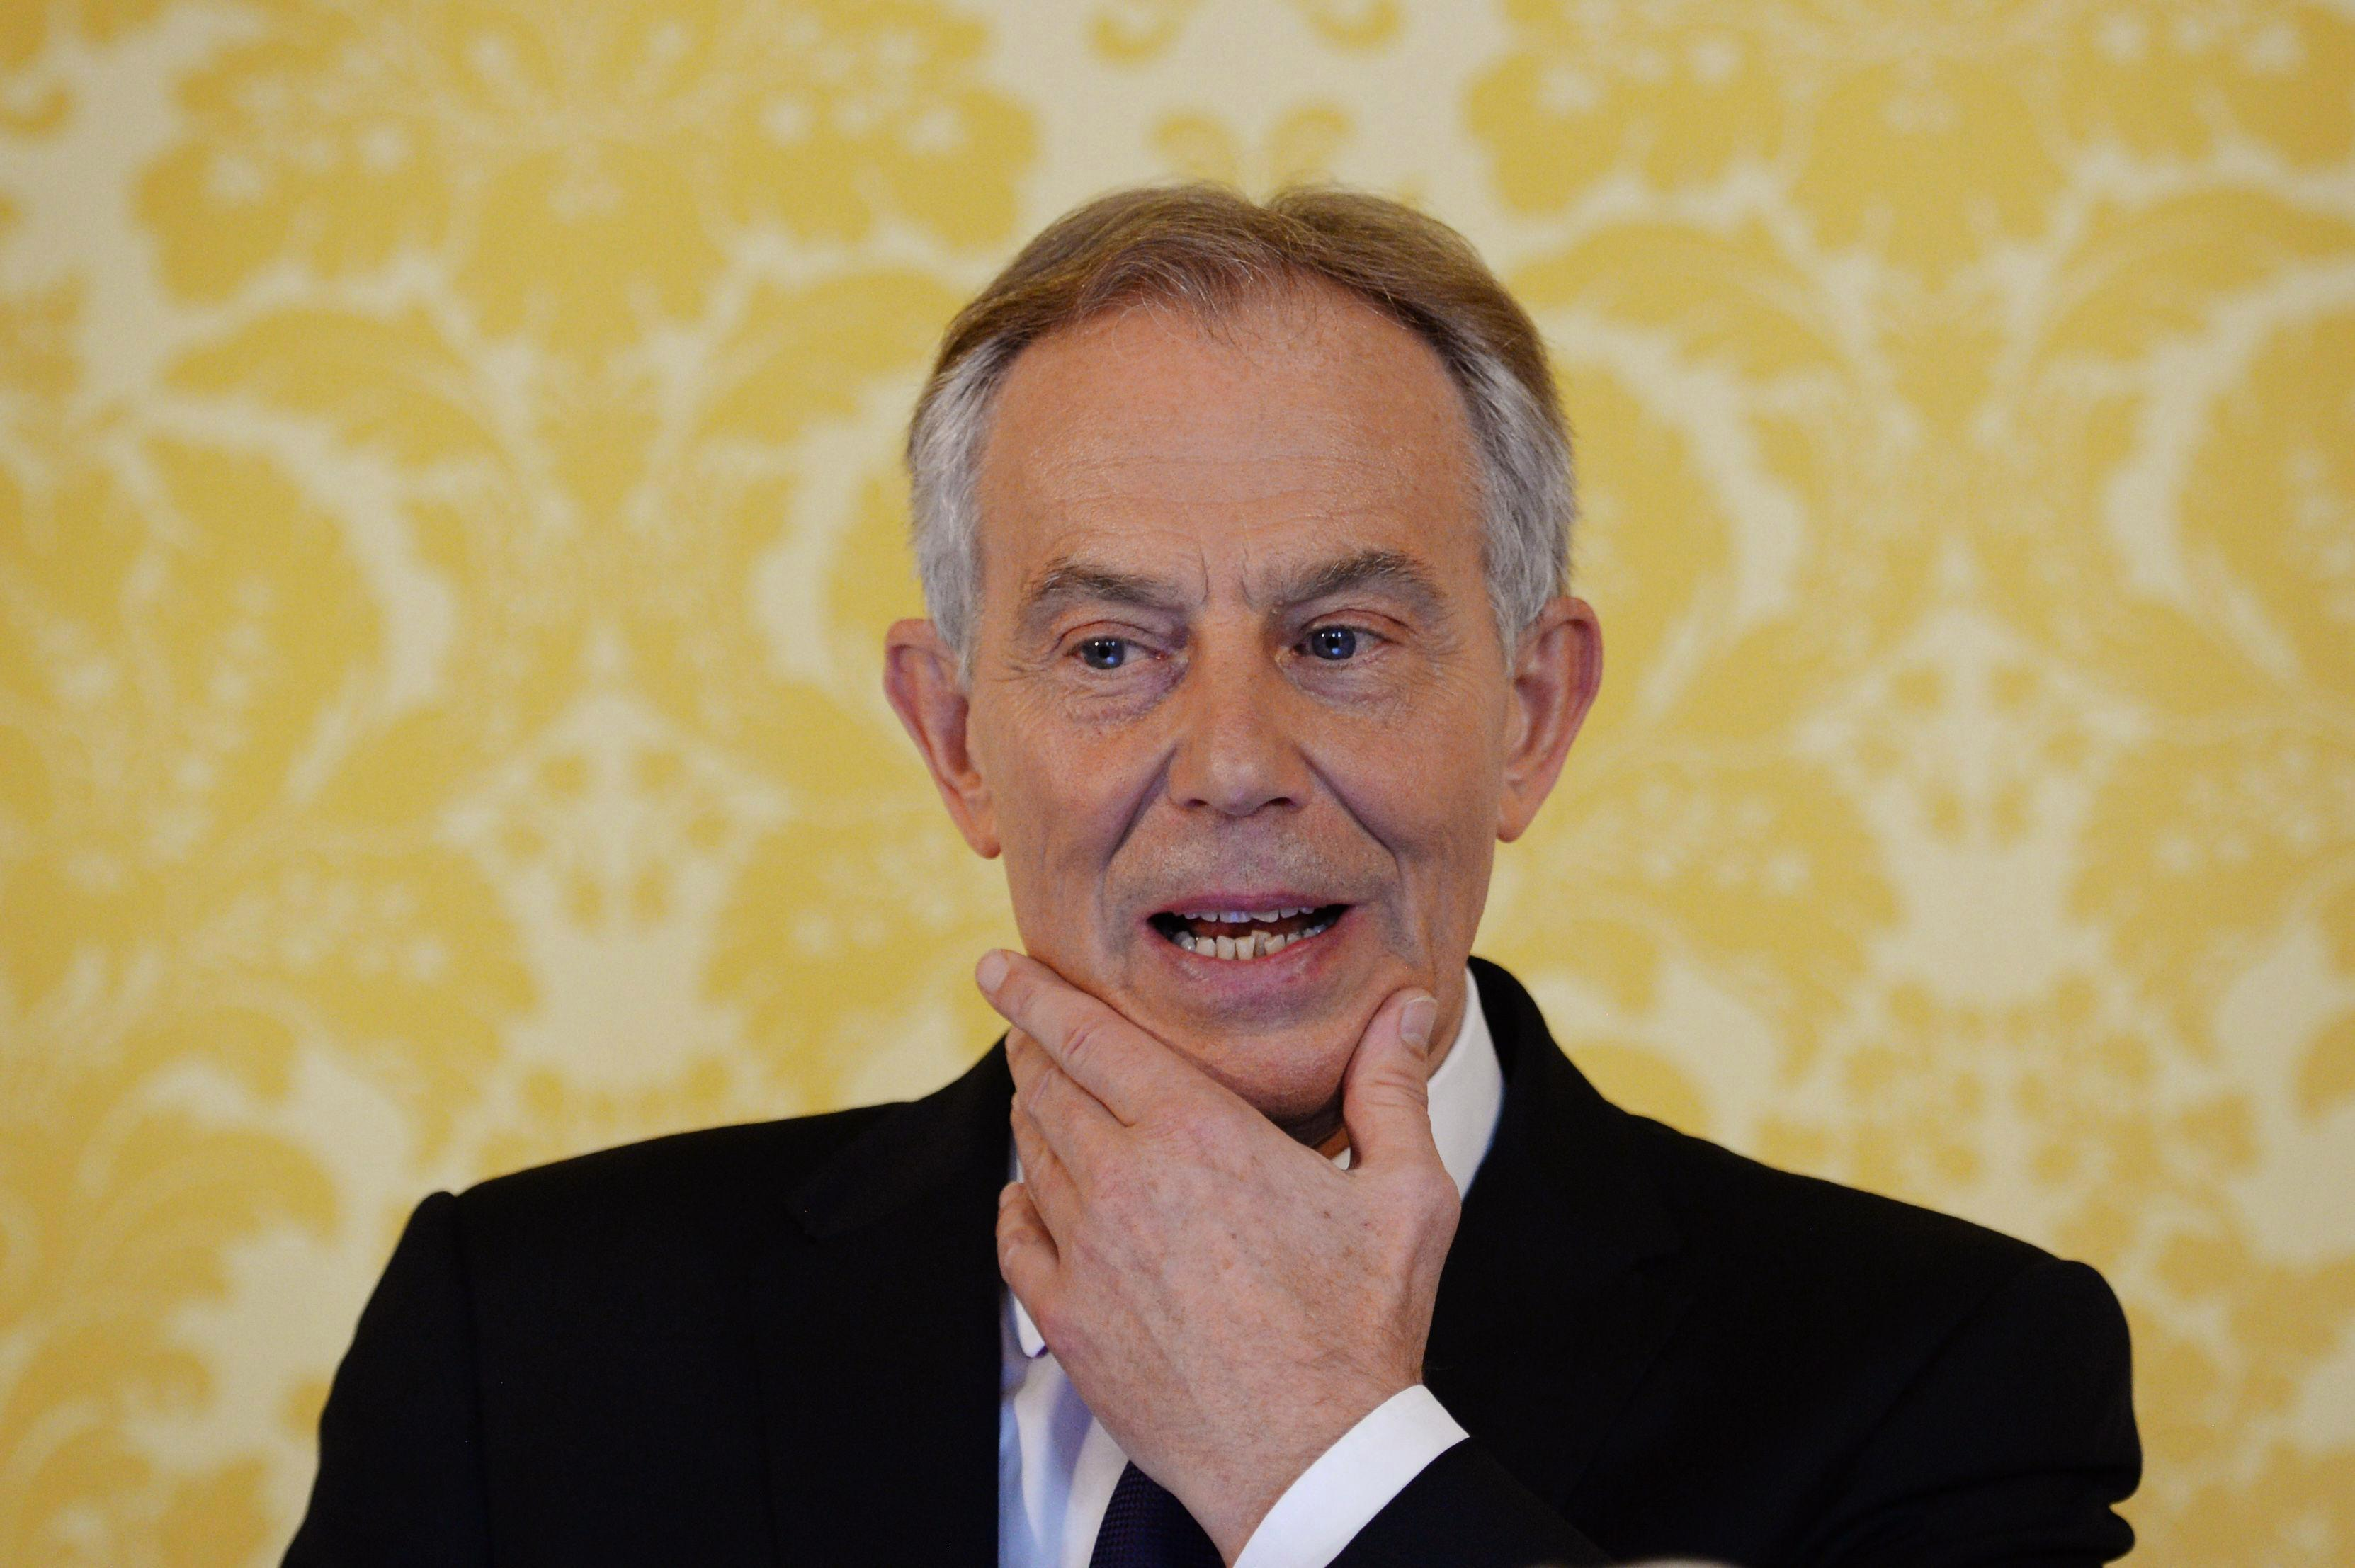 Donald Trump author labels Tony Blair a 'complete liar', was 'sucking up' to the US and even hints the President could be having an affair